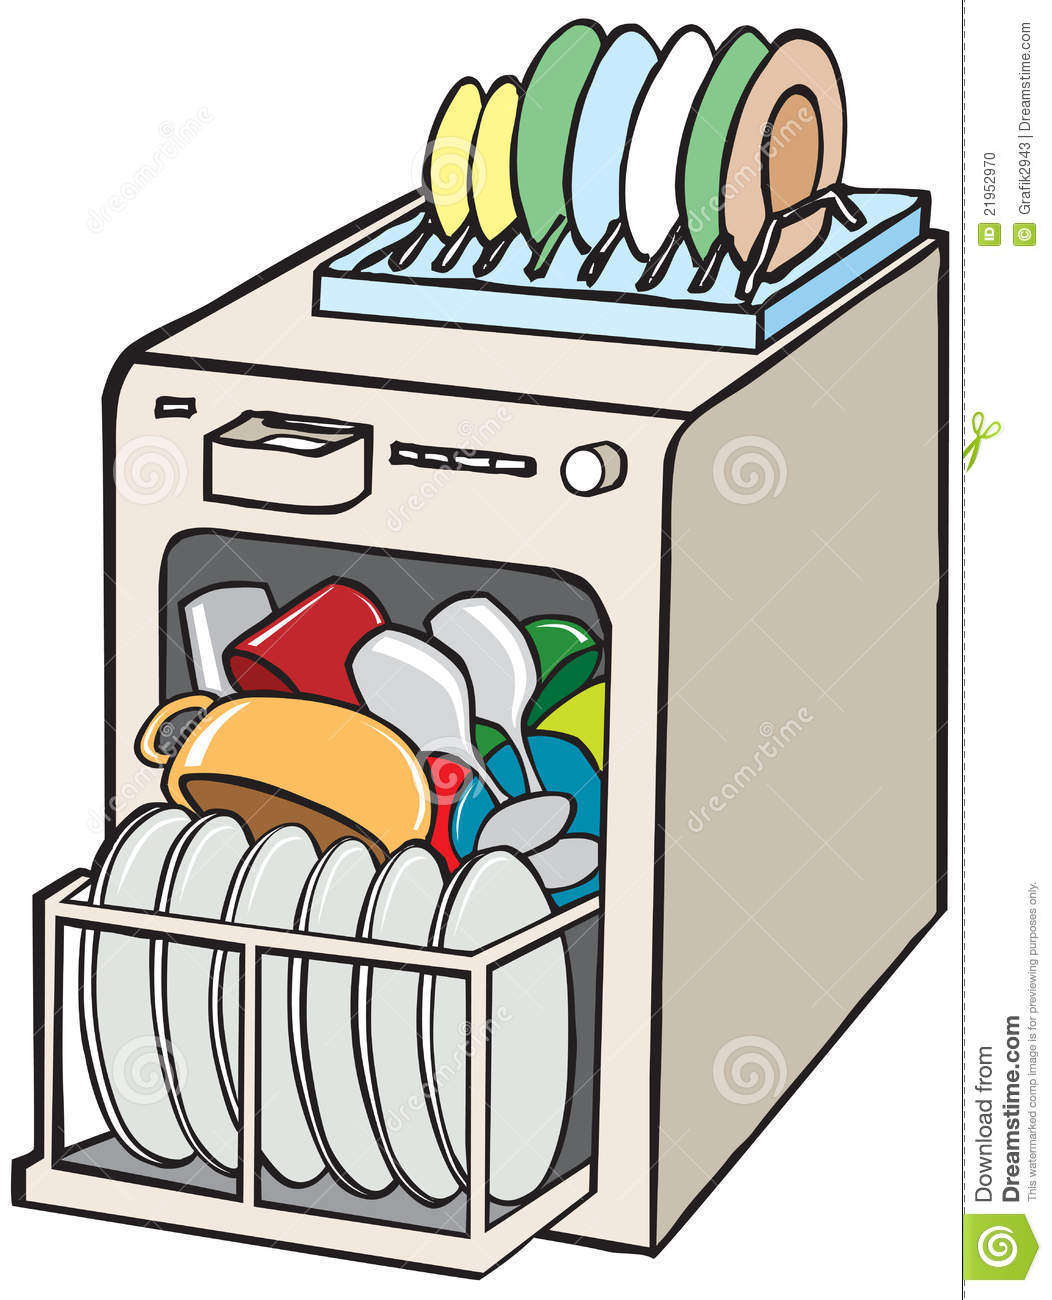 clip art library Dishwasher clipart. Collection of free download